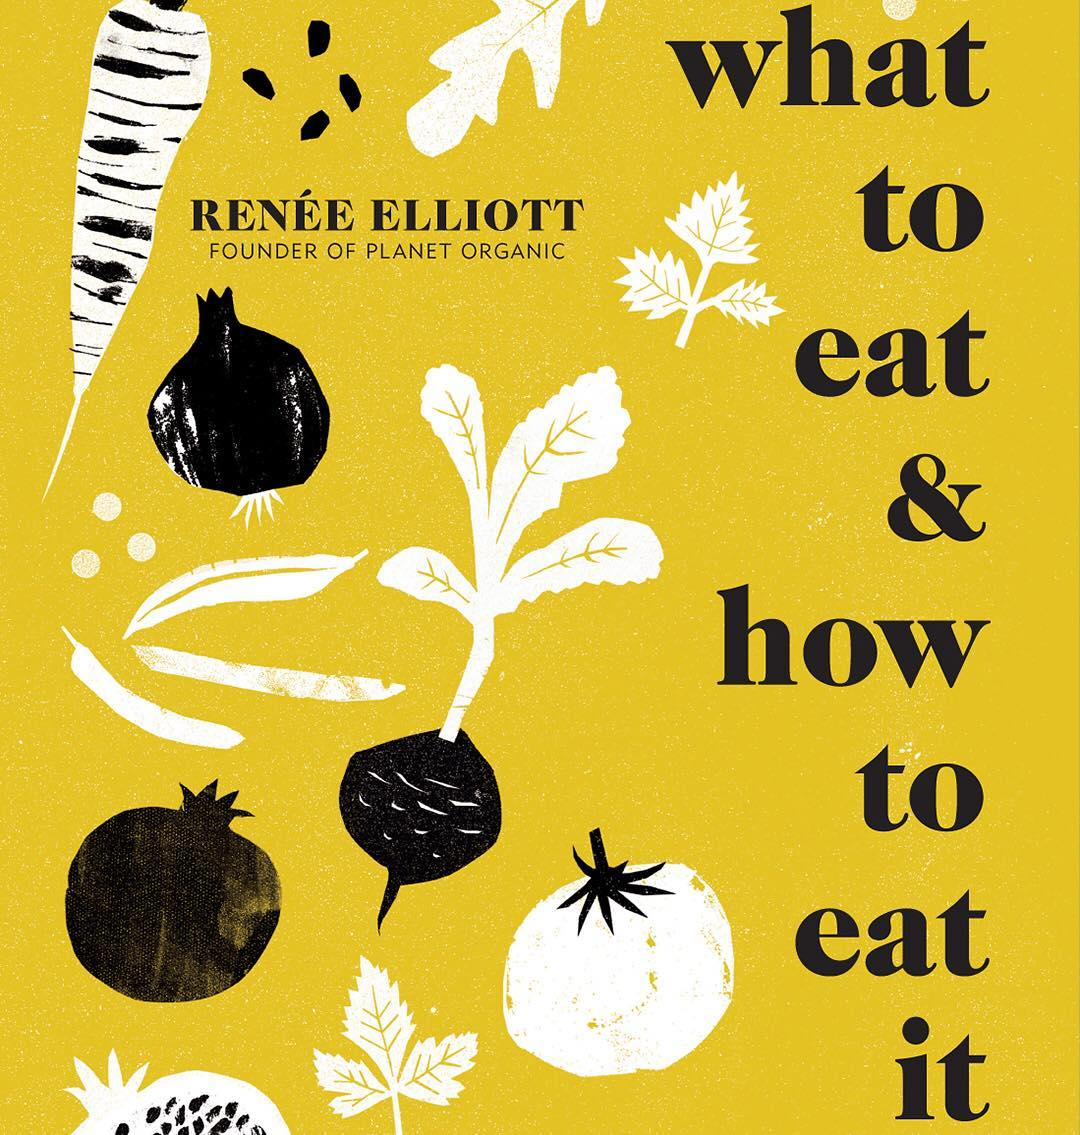 I have had the pleasure of meeting Renée Elliot, founder of @planetorganic a number of times and we both share a passion for being kind to our environment and working with the health of our soil in mind. Her new book 'What to Eat & How to Eat it' is a brilliant read and I am thrilled to be welcoming her to both our Pimlico and Cotswolds farmshops this week to sign copies. We have shared details on the timings etc on the daylesford.com website #organic #chooseorganic #wellbeing #sustainable #nurturenature